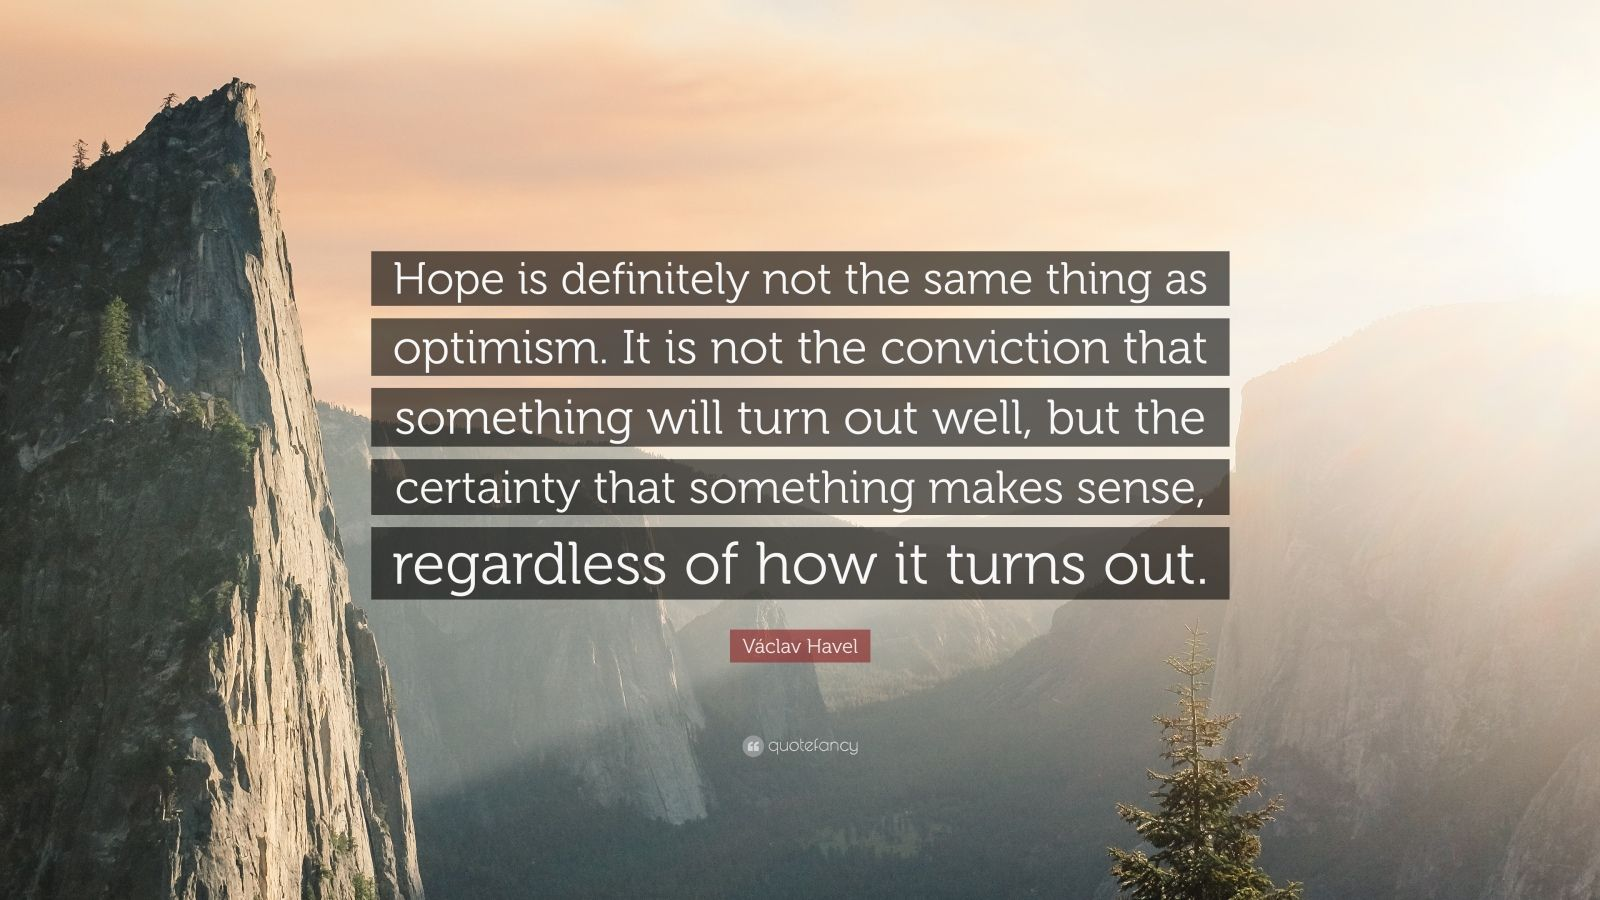 """Václav Havel Quote: """"Hope is definitely not the same thing as optimism. It is not the conviction that something will turn out well, but the certainty that something makes sense, regardless of how it turns out."""""""